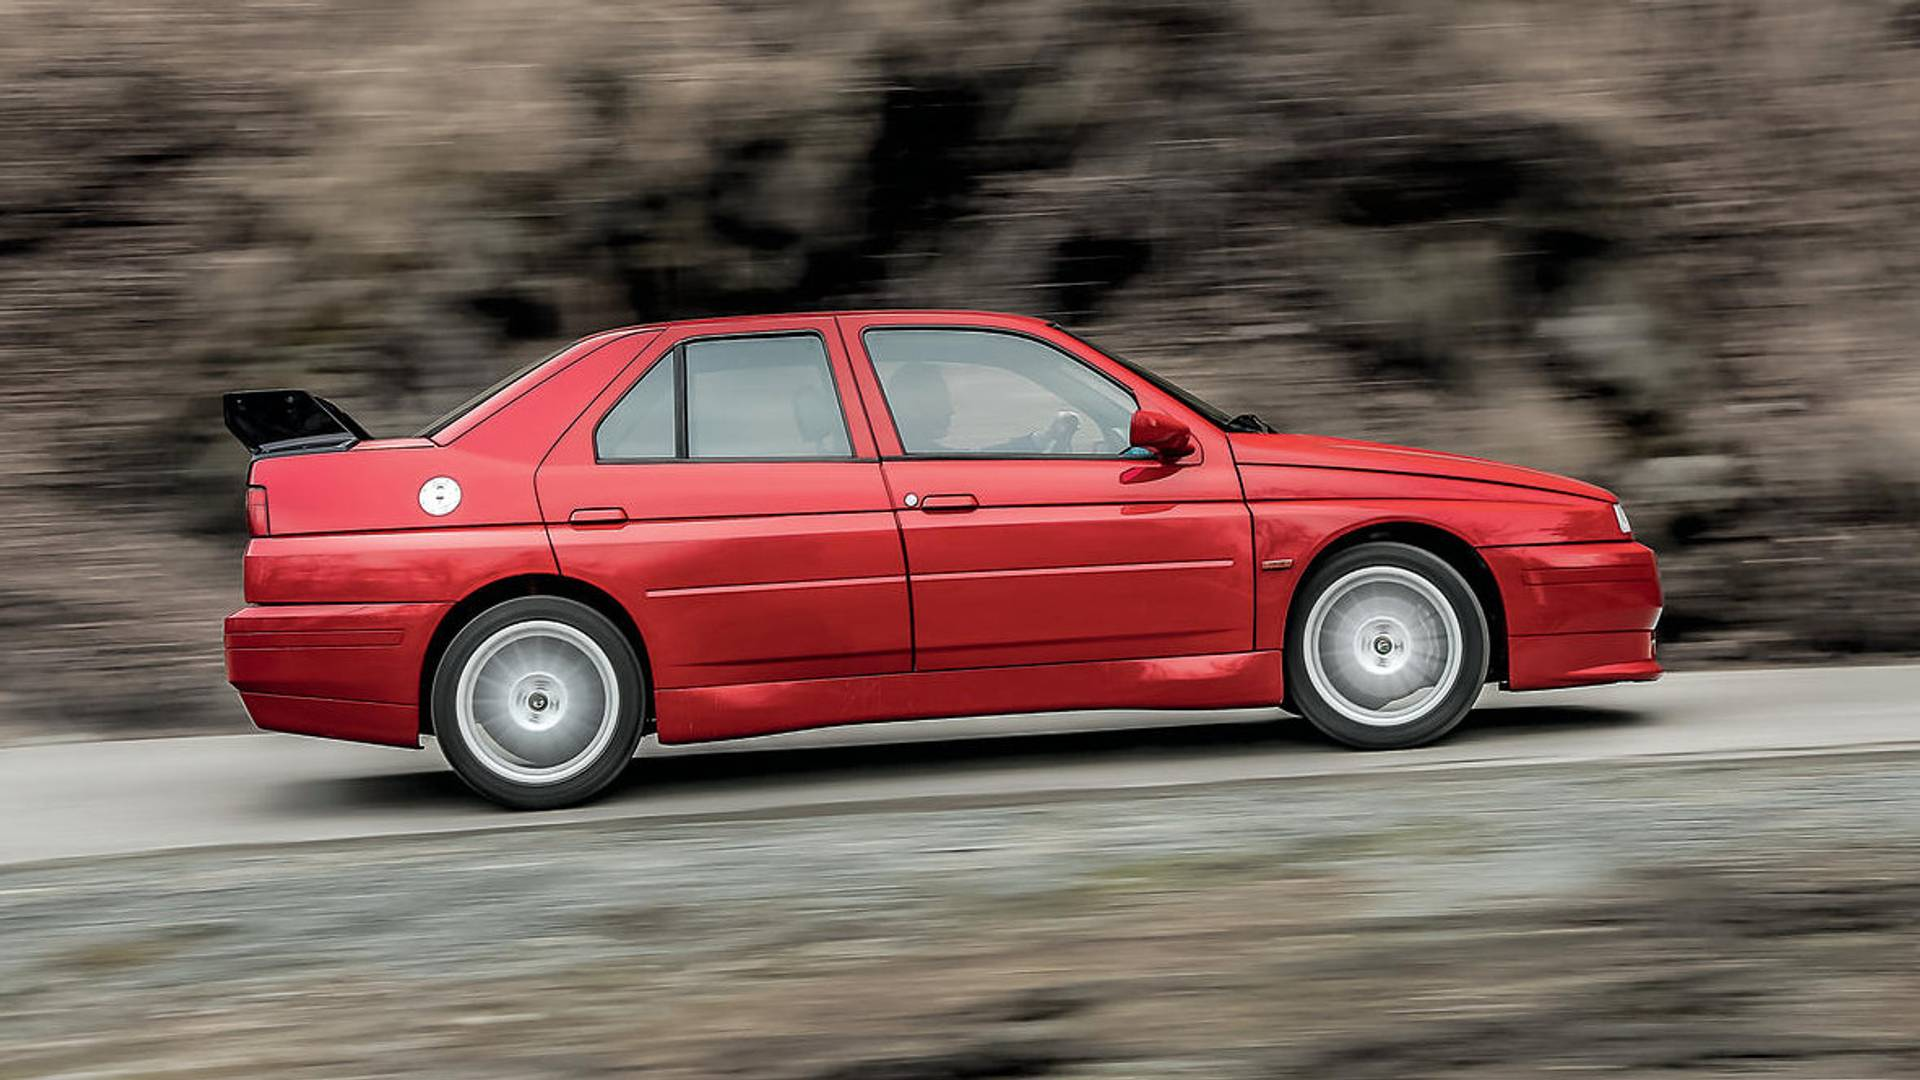 Buy The One Of One Alfa Romeo 155 Gta Stradale That Never Was